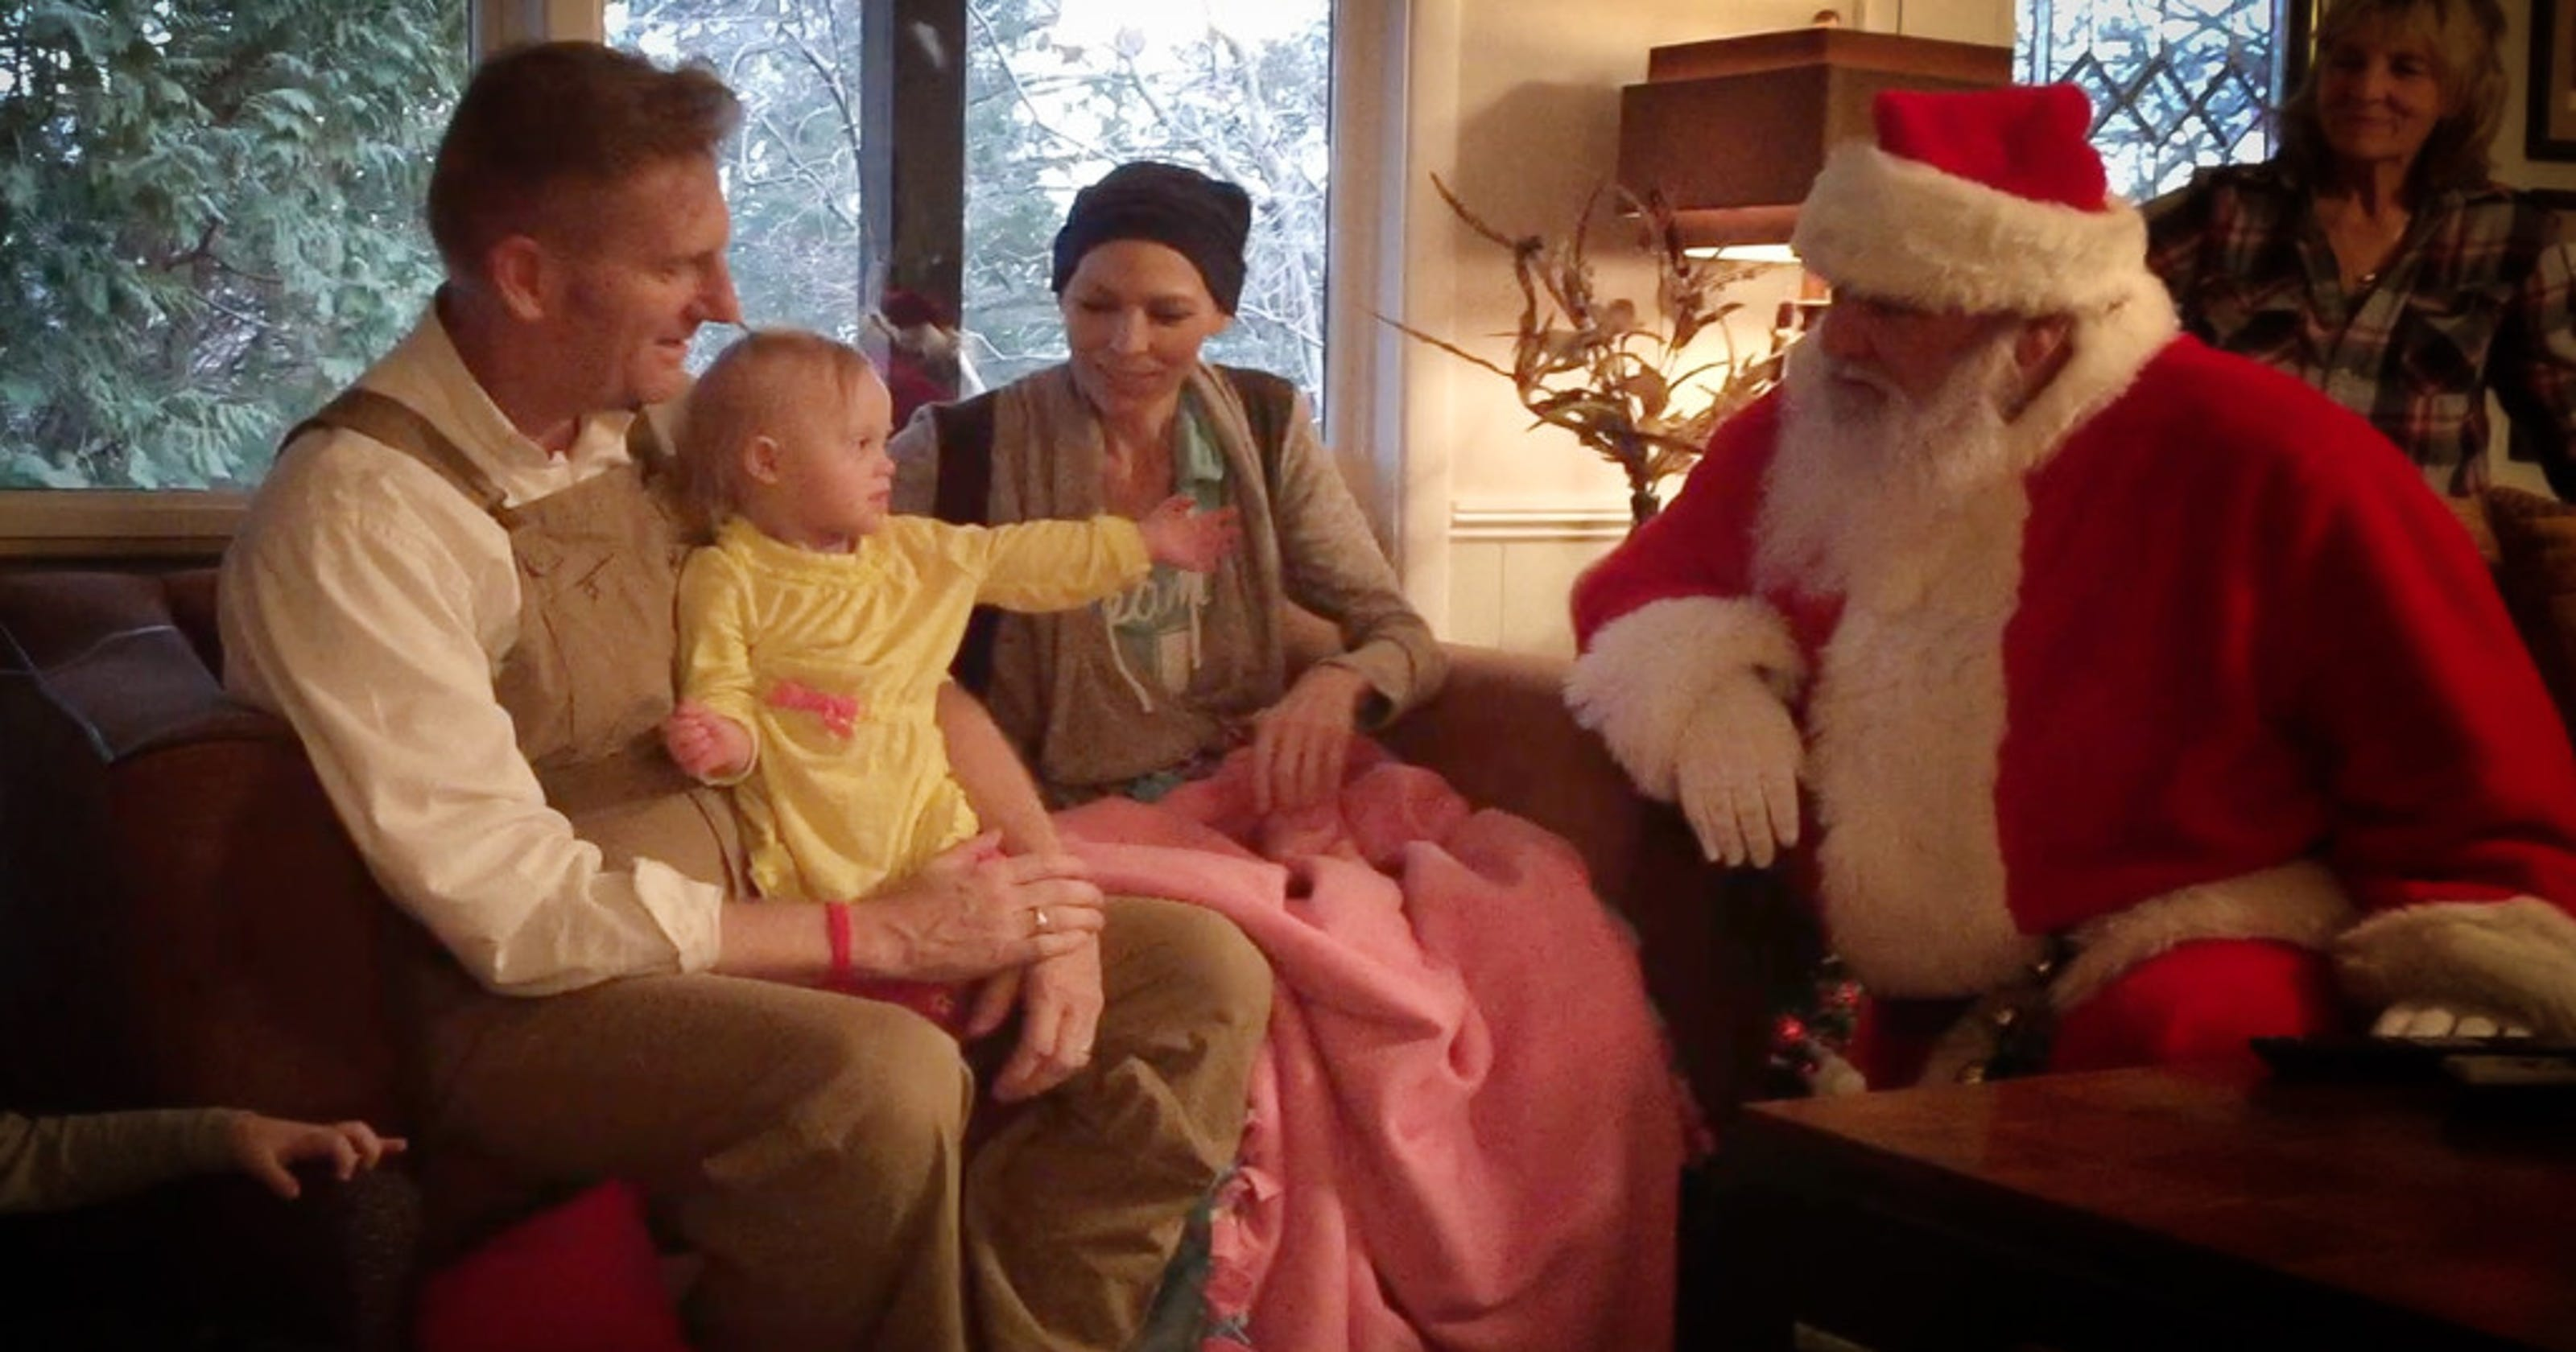 Joey Feek gets Christmas early